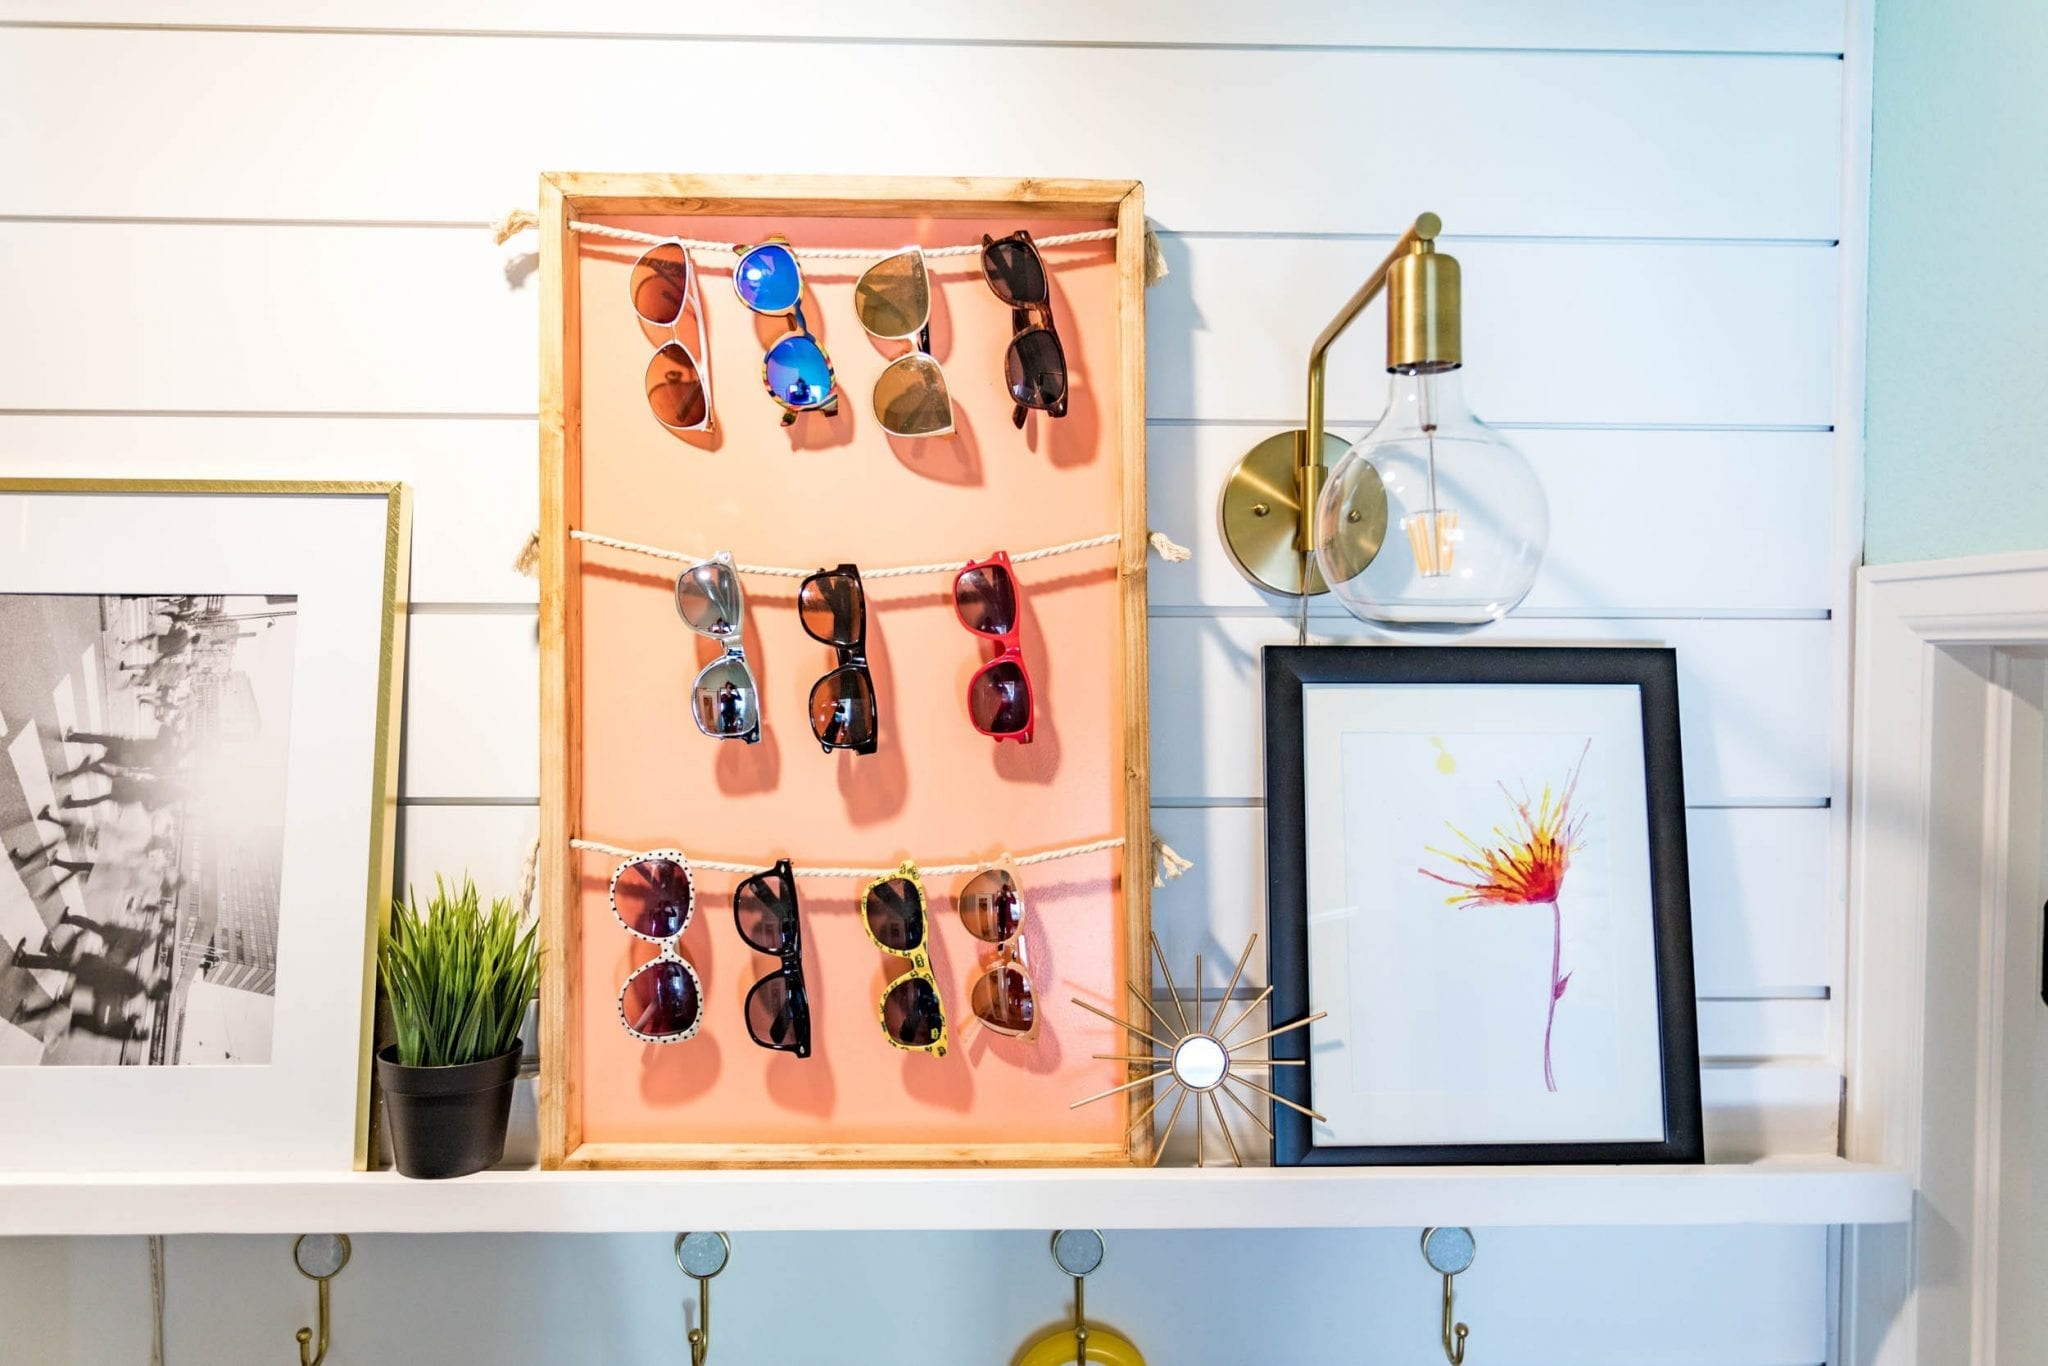 THIS IS GENIUS!! sunglasses holder diy | sunglasses holder diy display | sunglasses holder wall | sunglasses holder wall storage ideas | diy sunglass display | siy sunglass holder | home decor | DIY Home decor ideas | Never Skip Brunch by Cara Newhart | #decor #diy #summer #neverskipbrunch